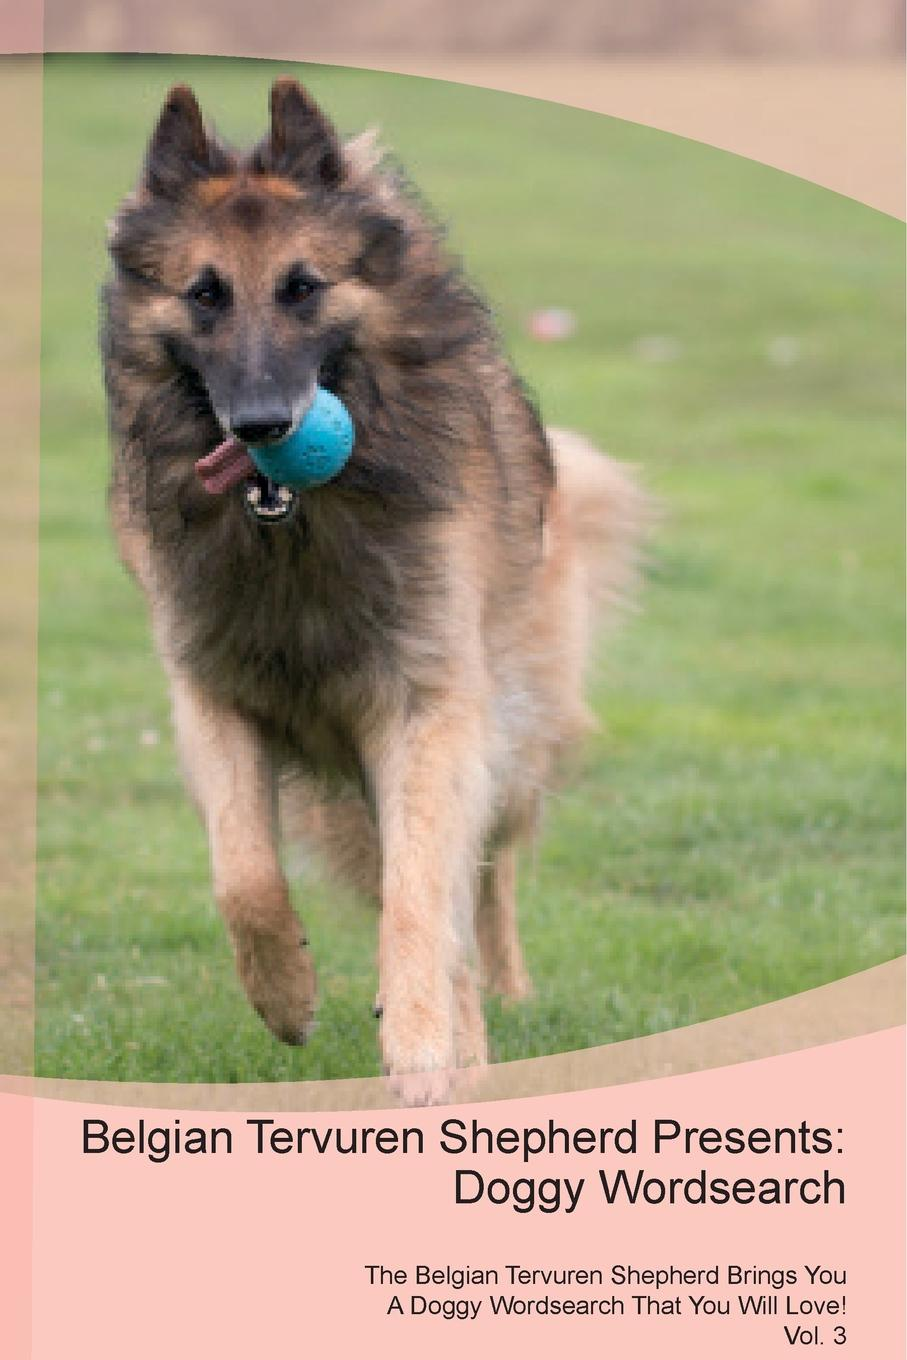 Doggy Puzzles Belgian Tervuren Shepherd Presents. Wordsearch The Brings You A That Will Love! Vol. 3